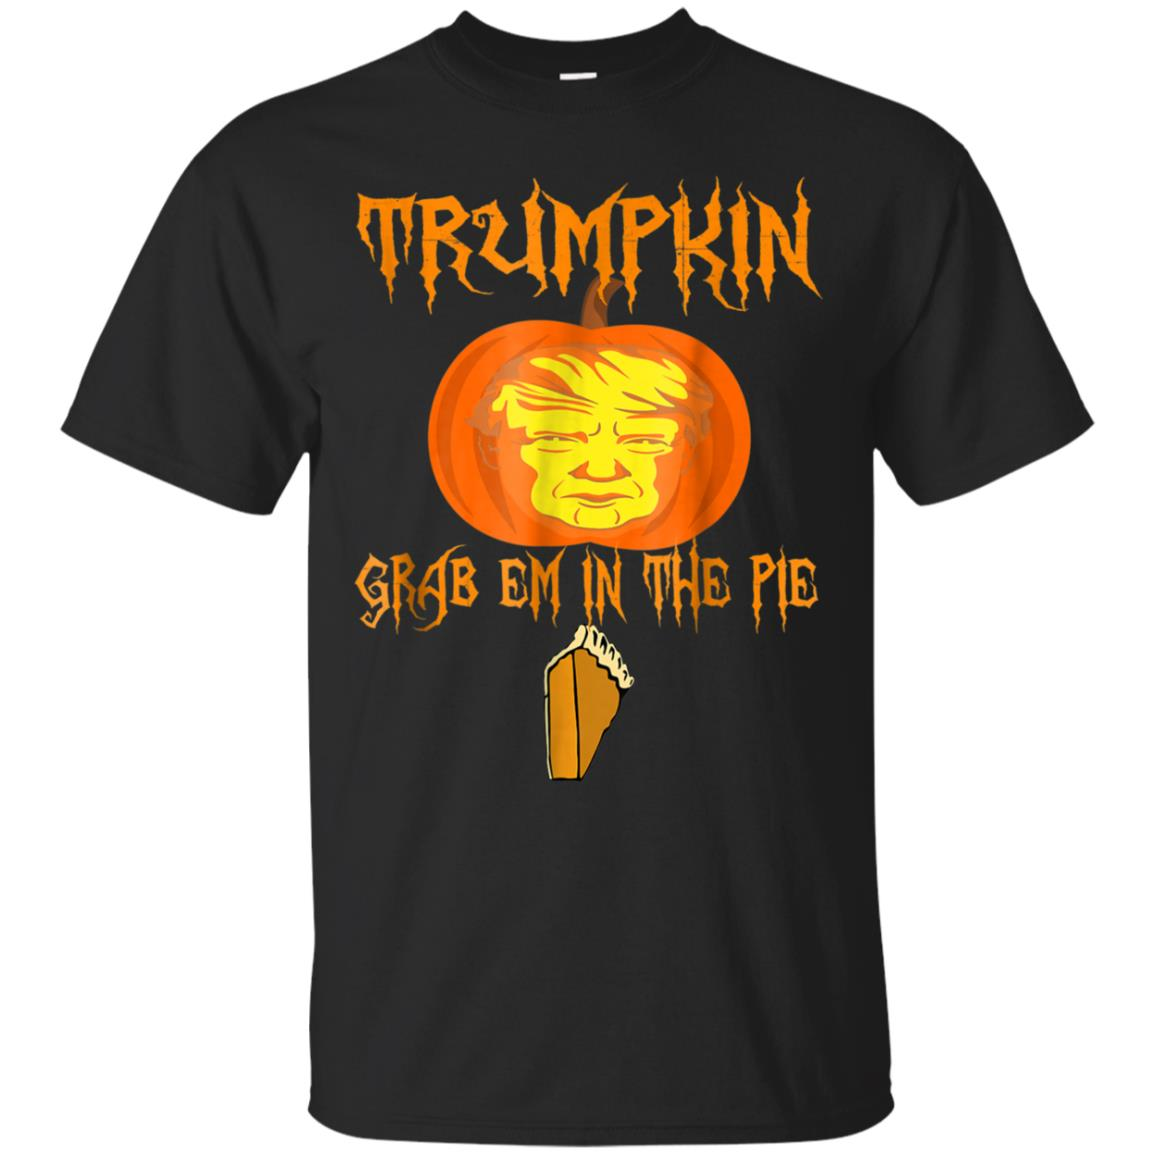 Trumpkin, Grab em in the pie. Halloween Jack o lantern 99promocode